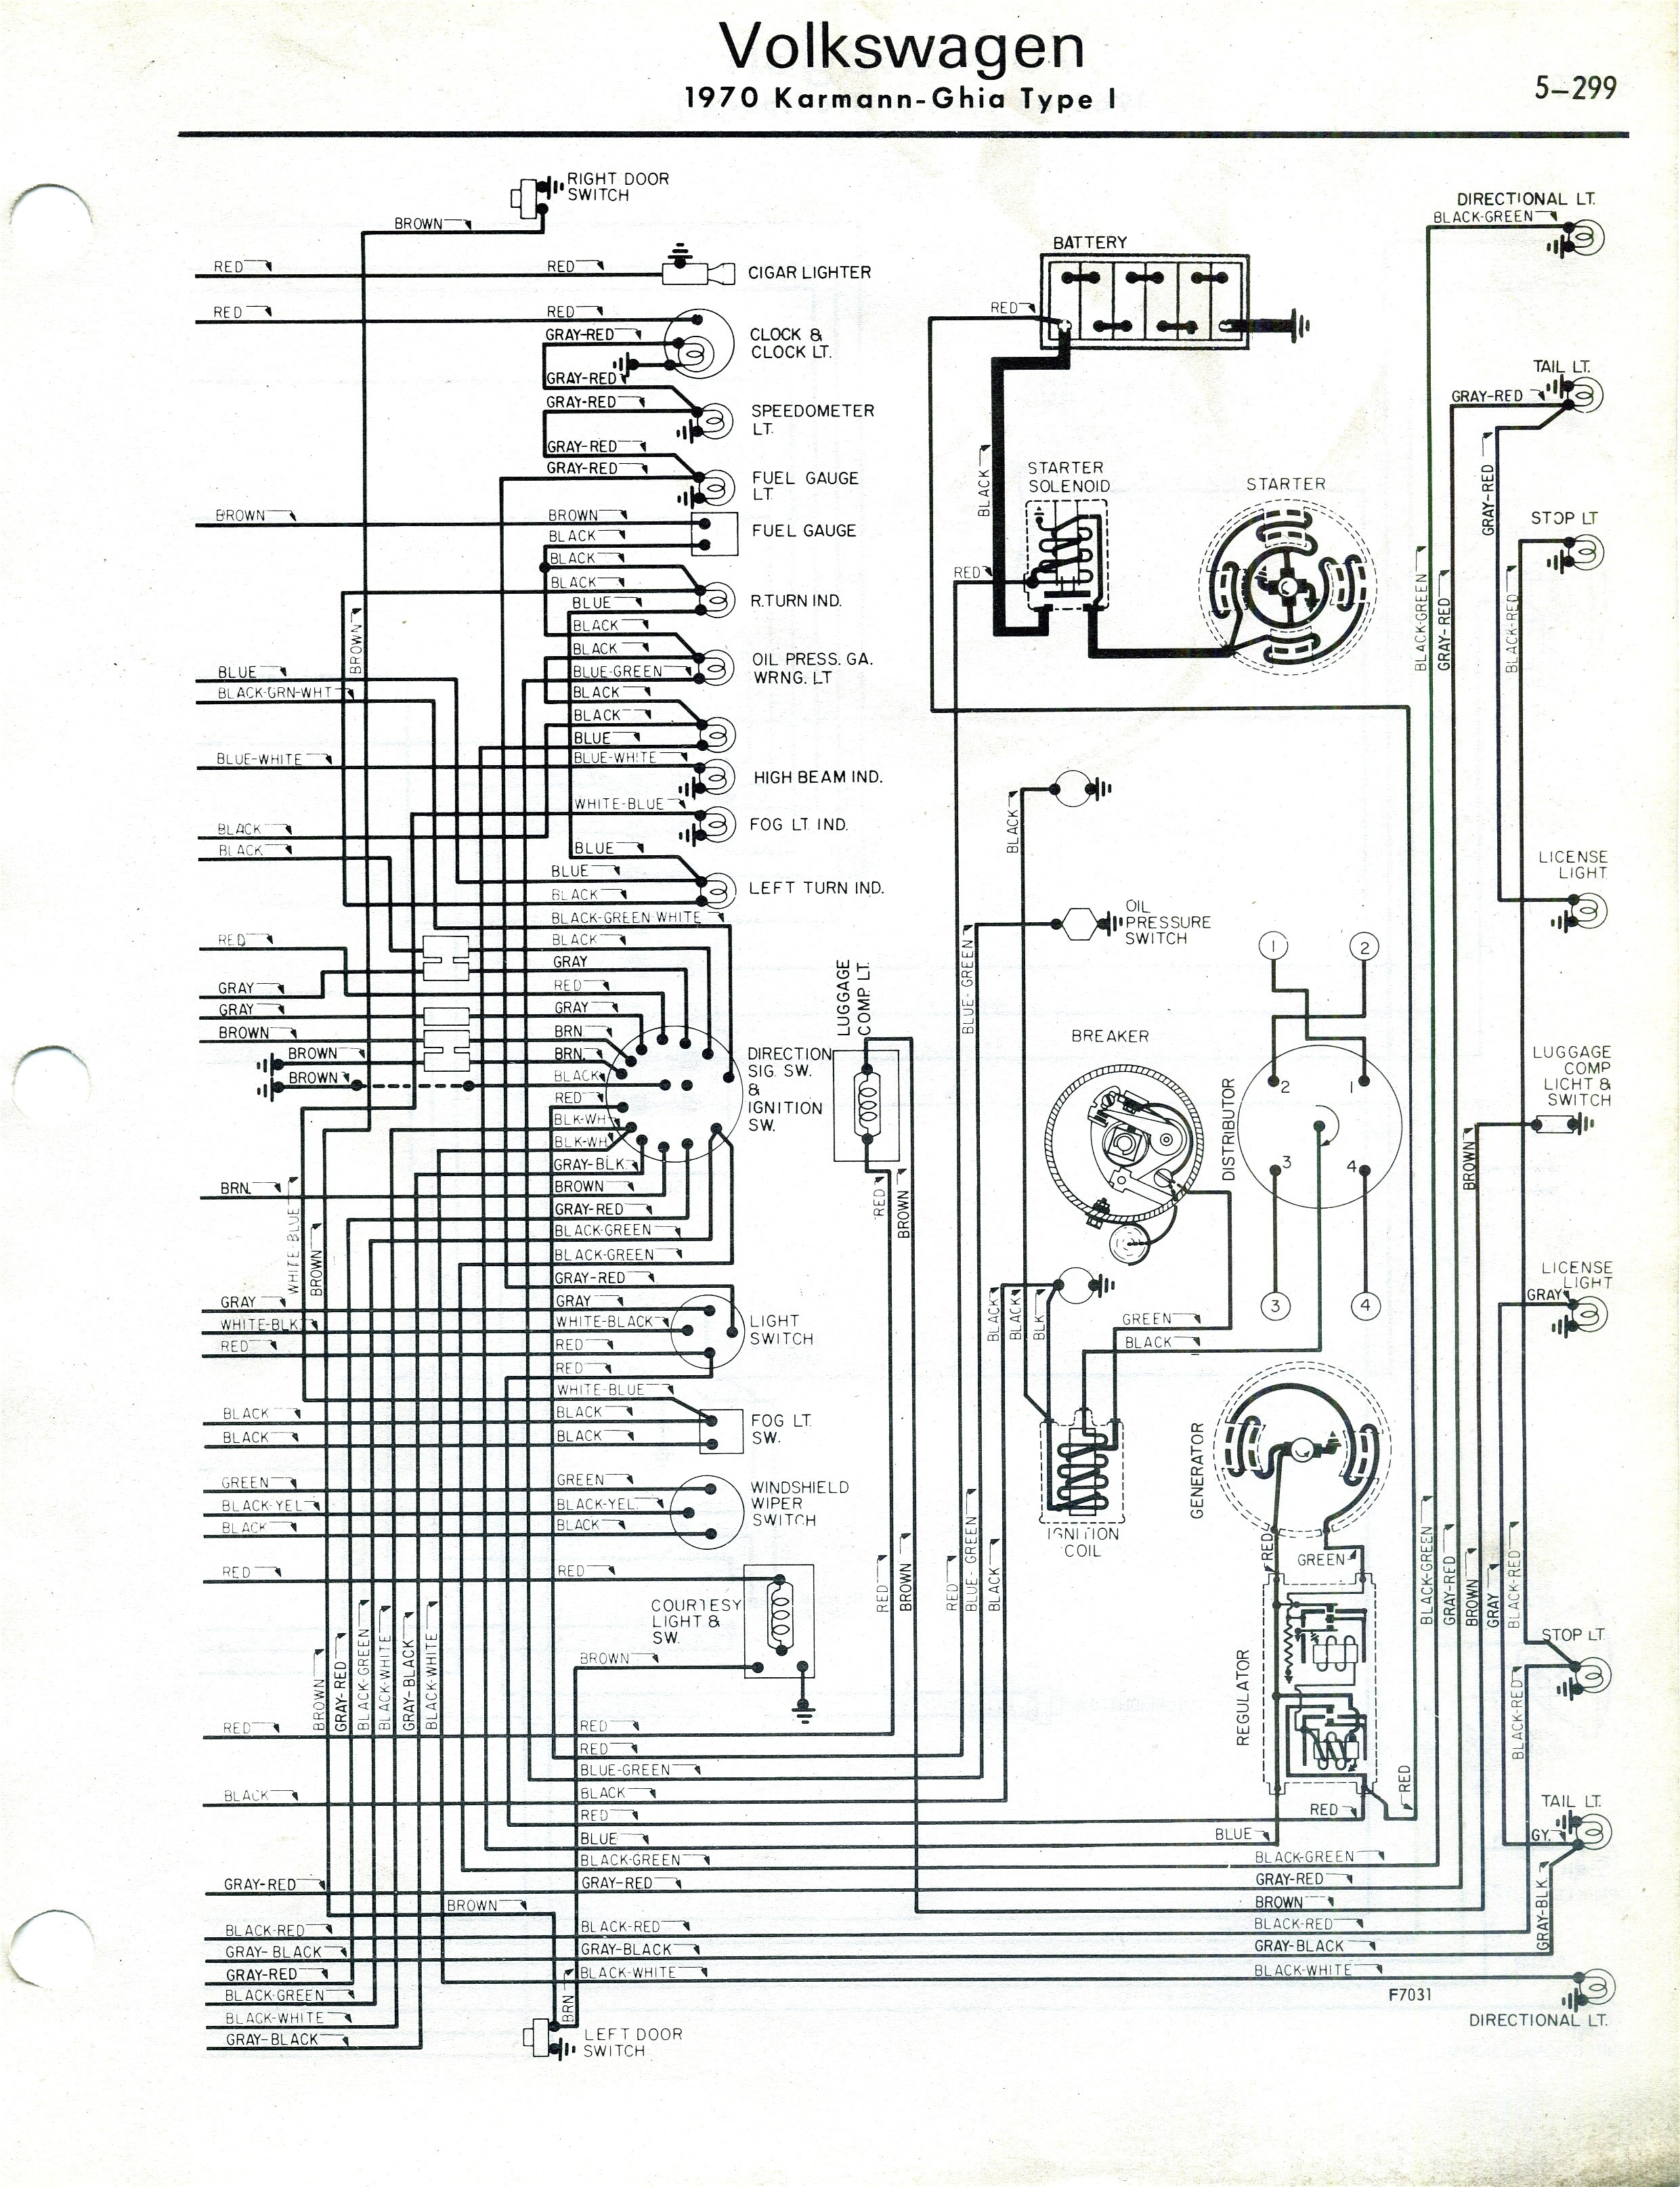 Mitchell Automotive Wiring Diagrams Software Within Diagram To B2network Of